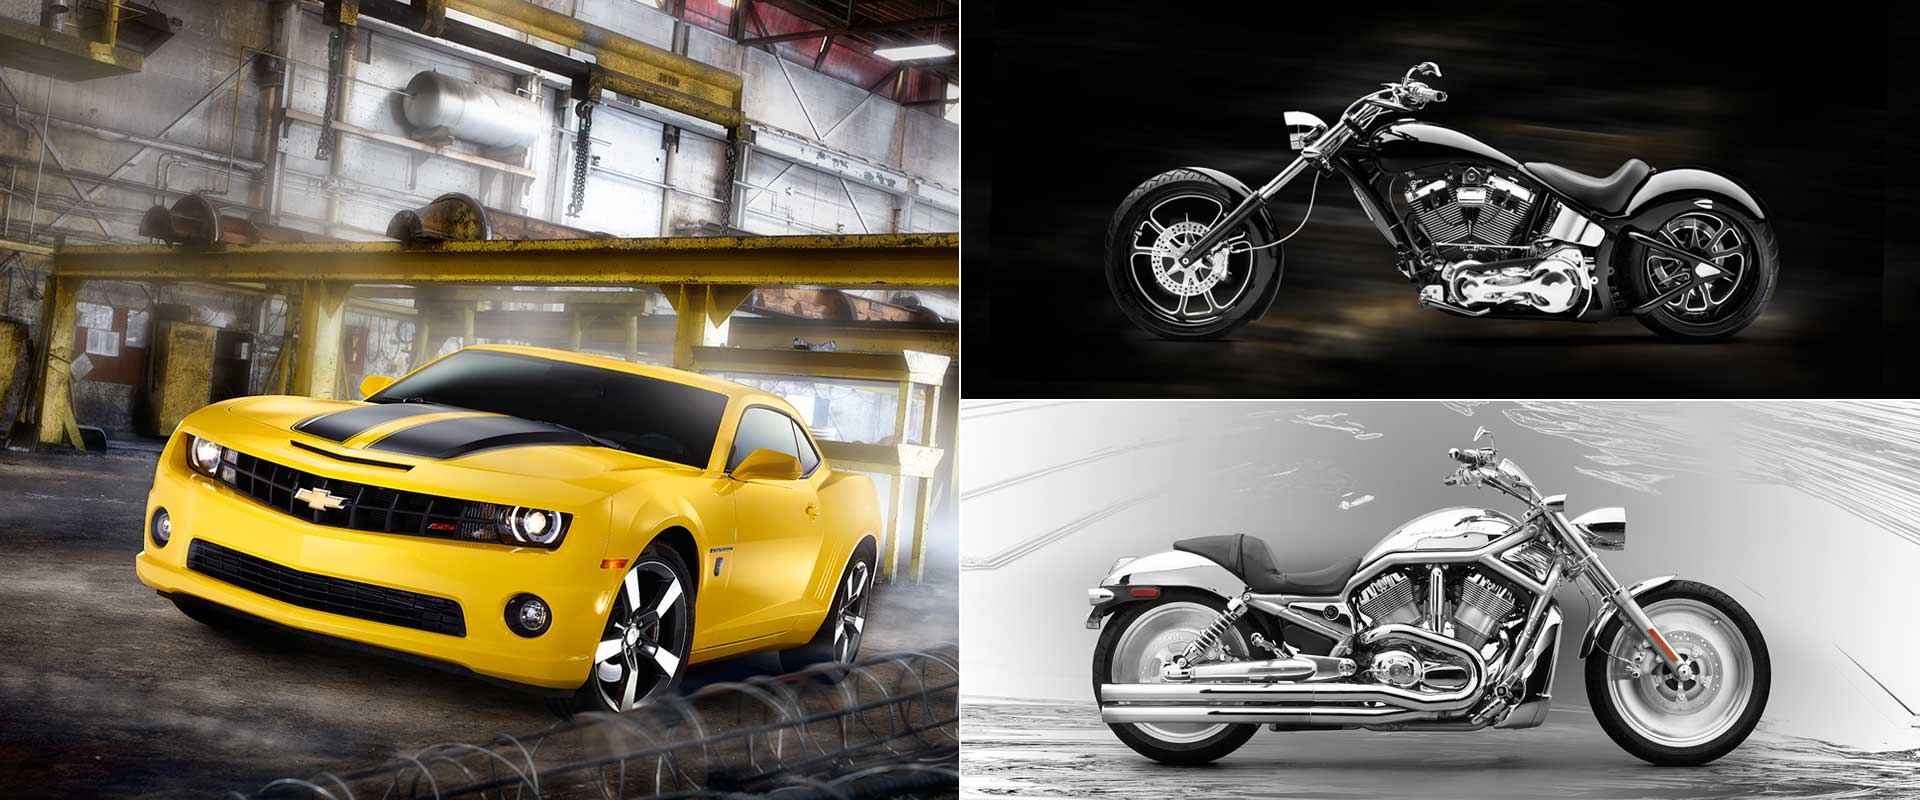 Professional Car & Motorcycle Photography by BP imaging